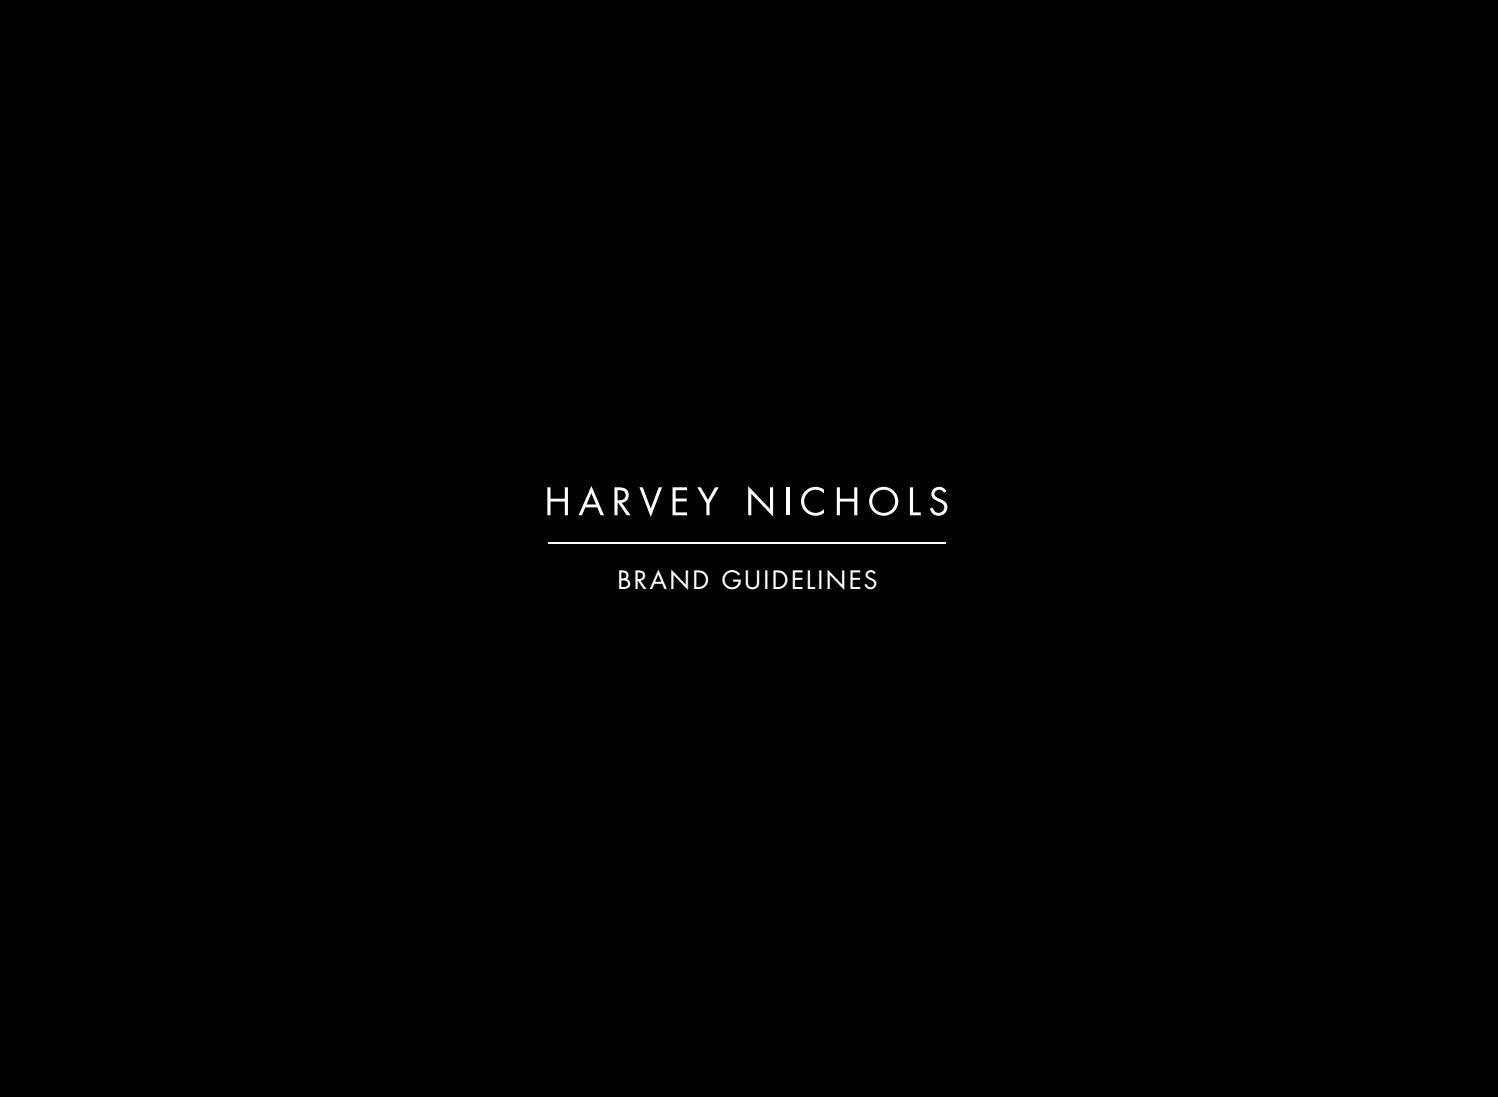 Brand guidelines internal by Harvey Nichols - issuu ed4aa0c3aef6d